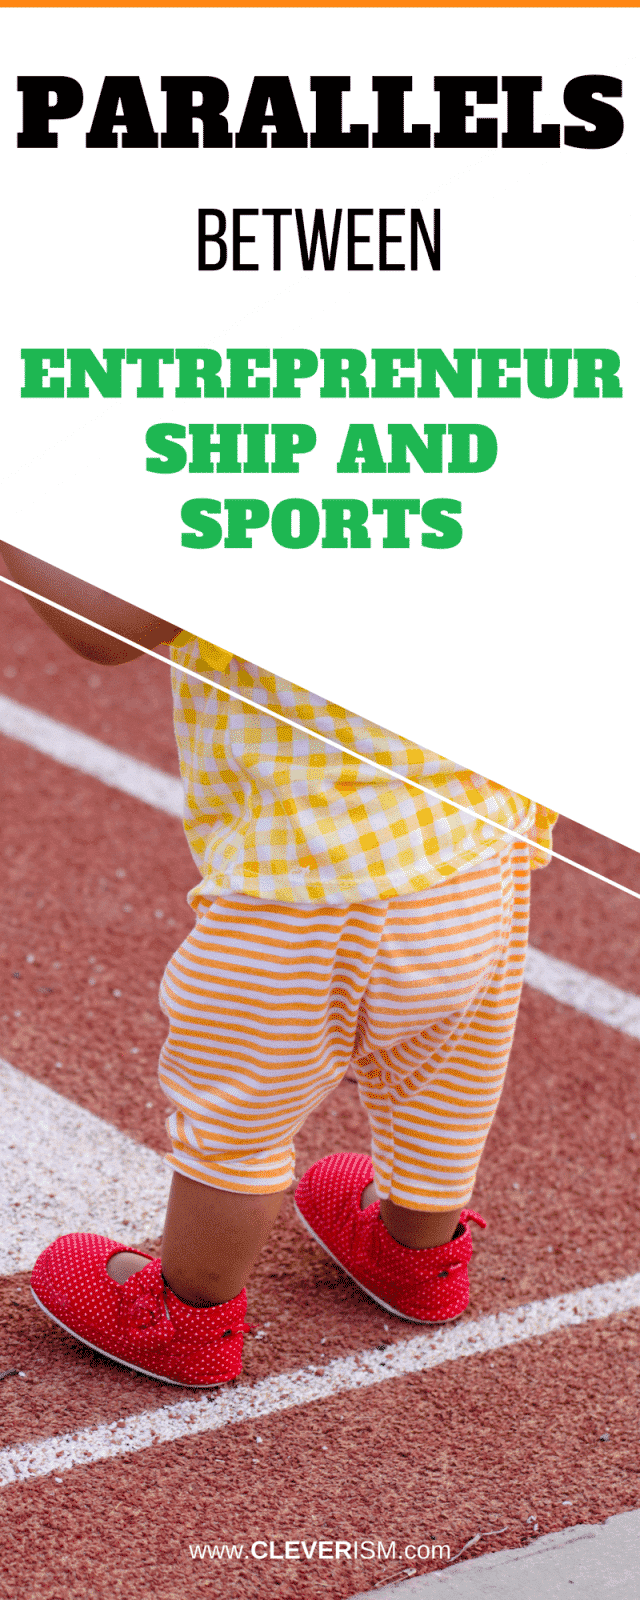 sports entrepreneurship The sport management emphasis is designed for those seeking entry or   bodies, professional sports franchises, sports entrepreneurship, sports facilities,.